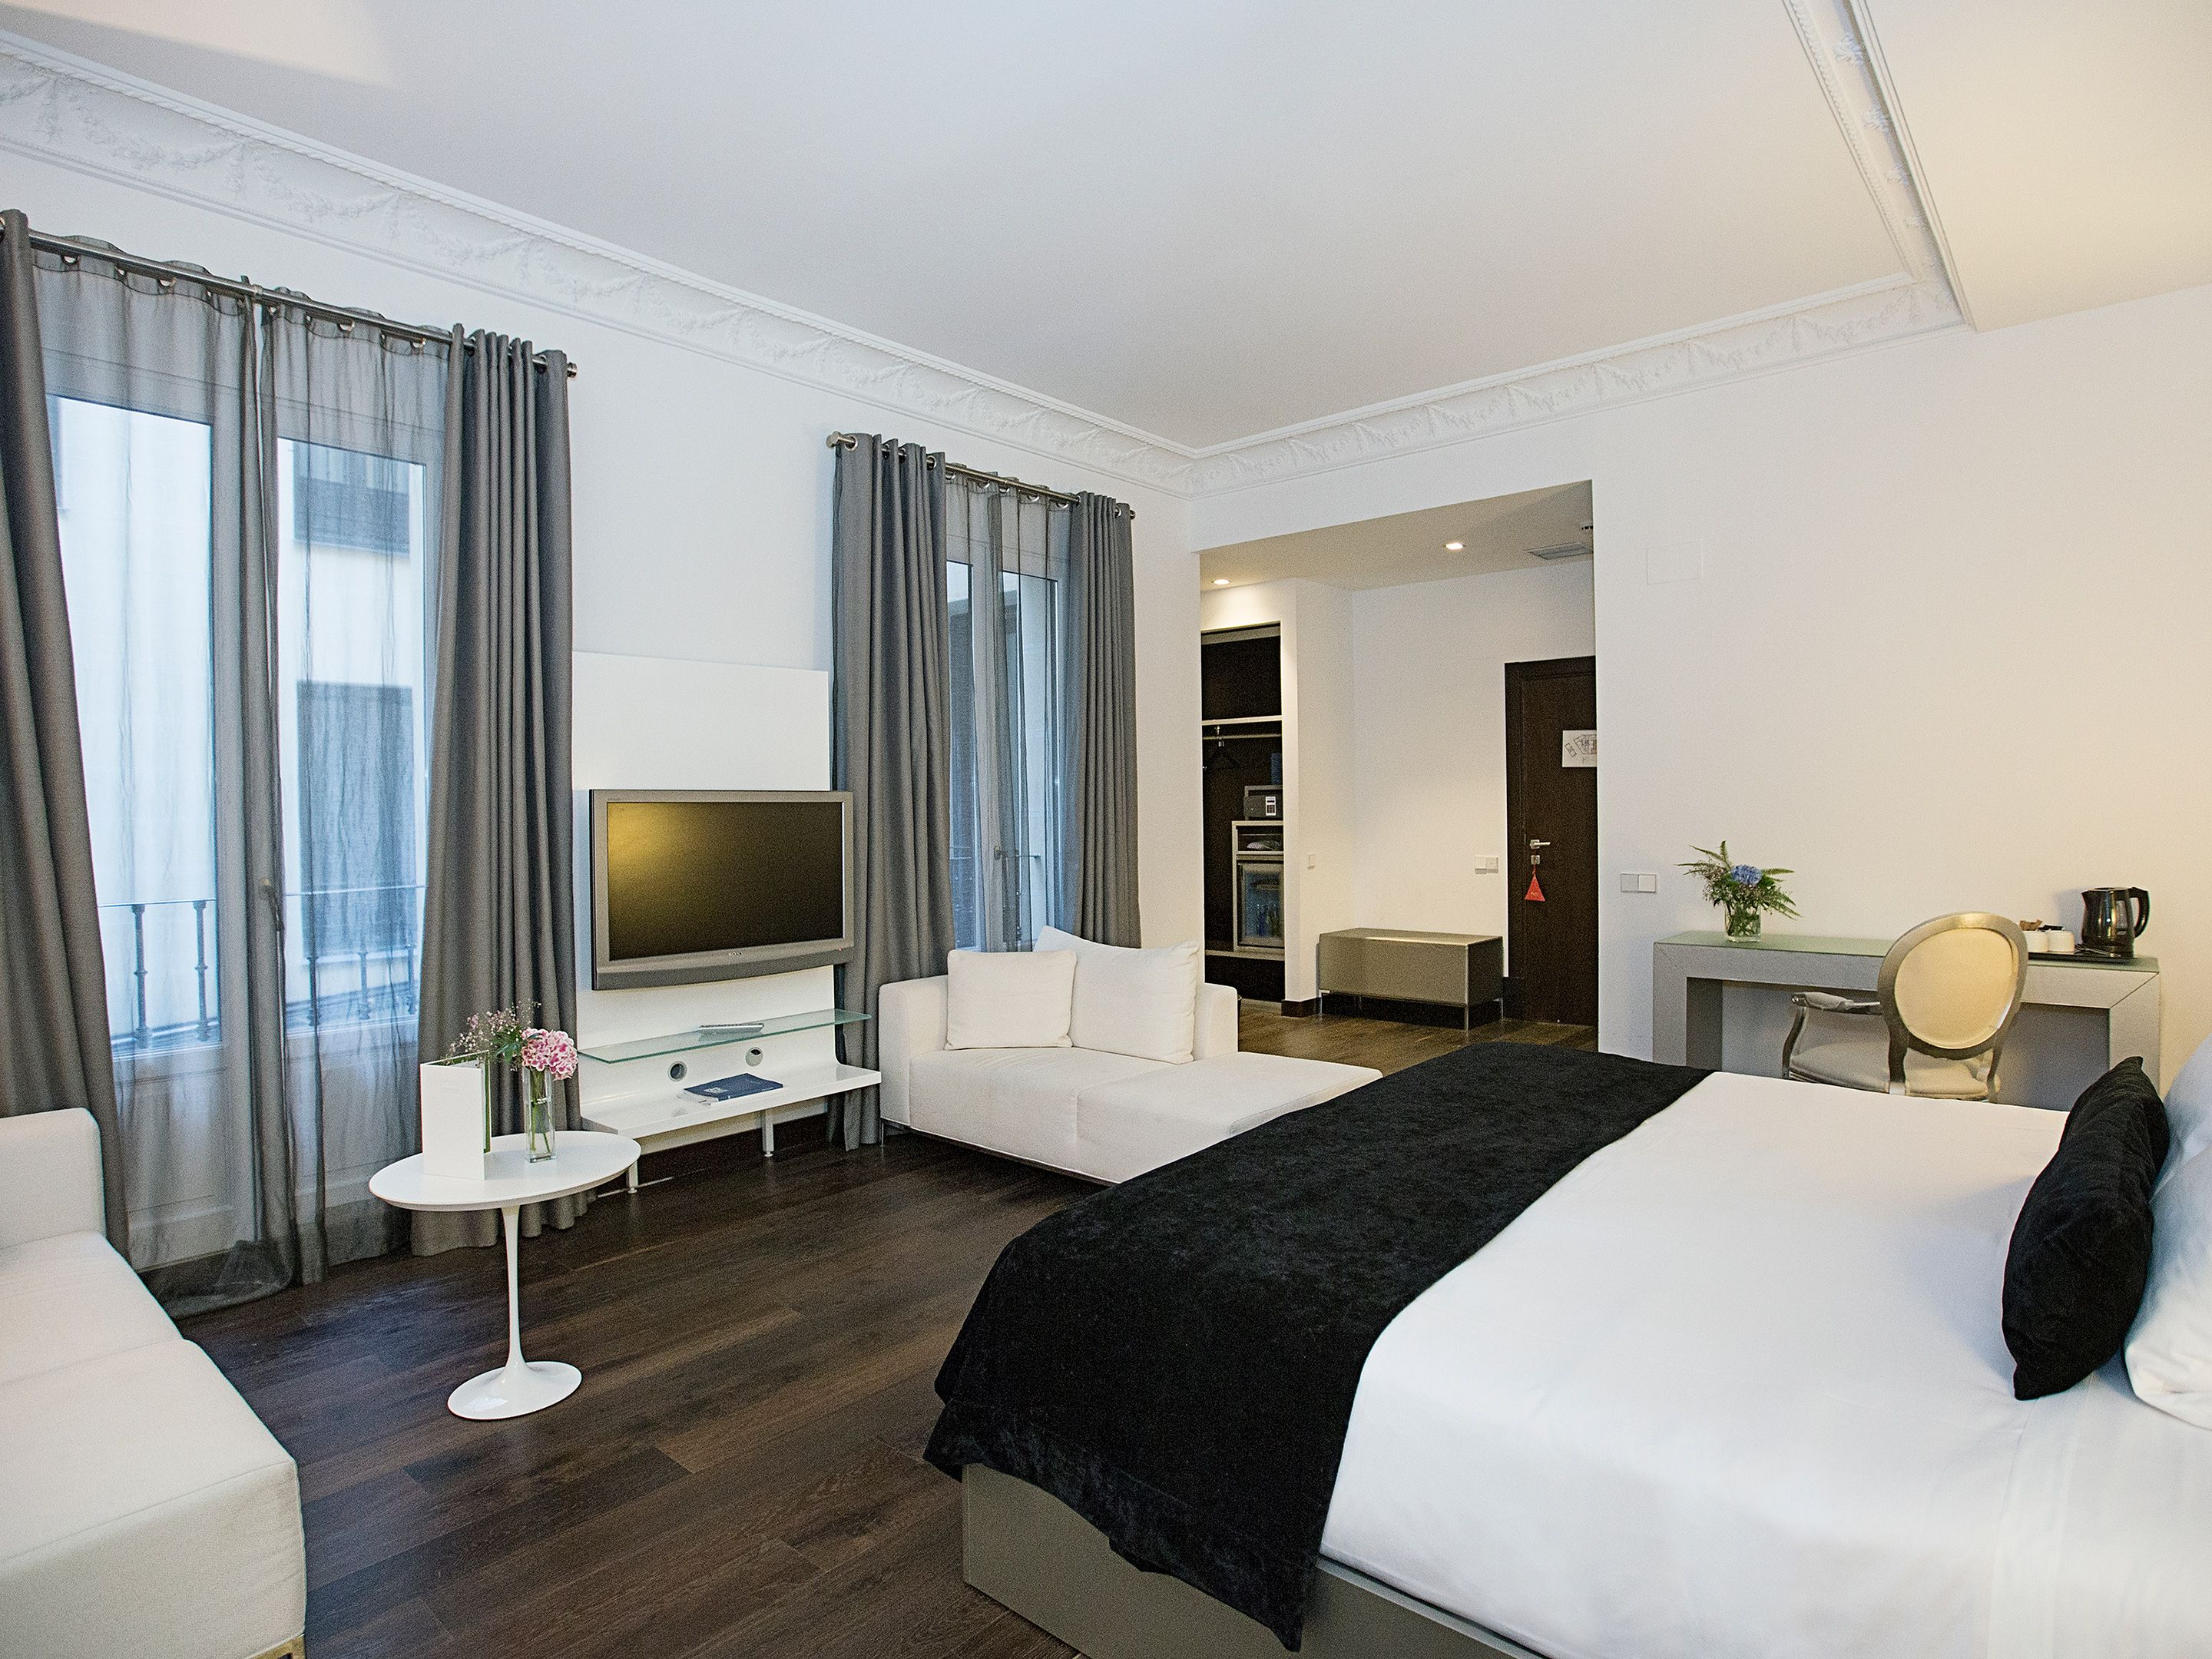 Rooms Suites At Hospes Puerta De Alcal In Madrid Spain